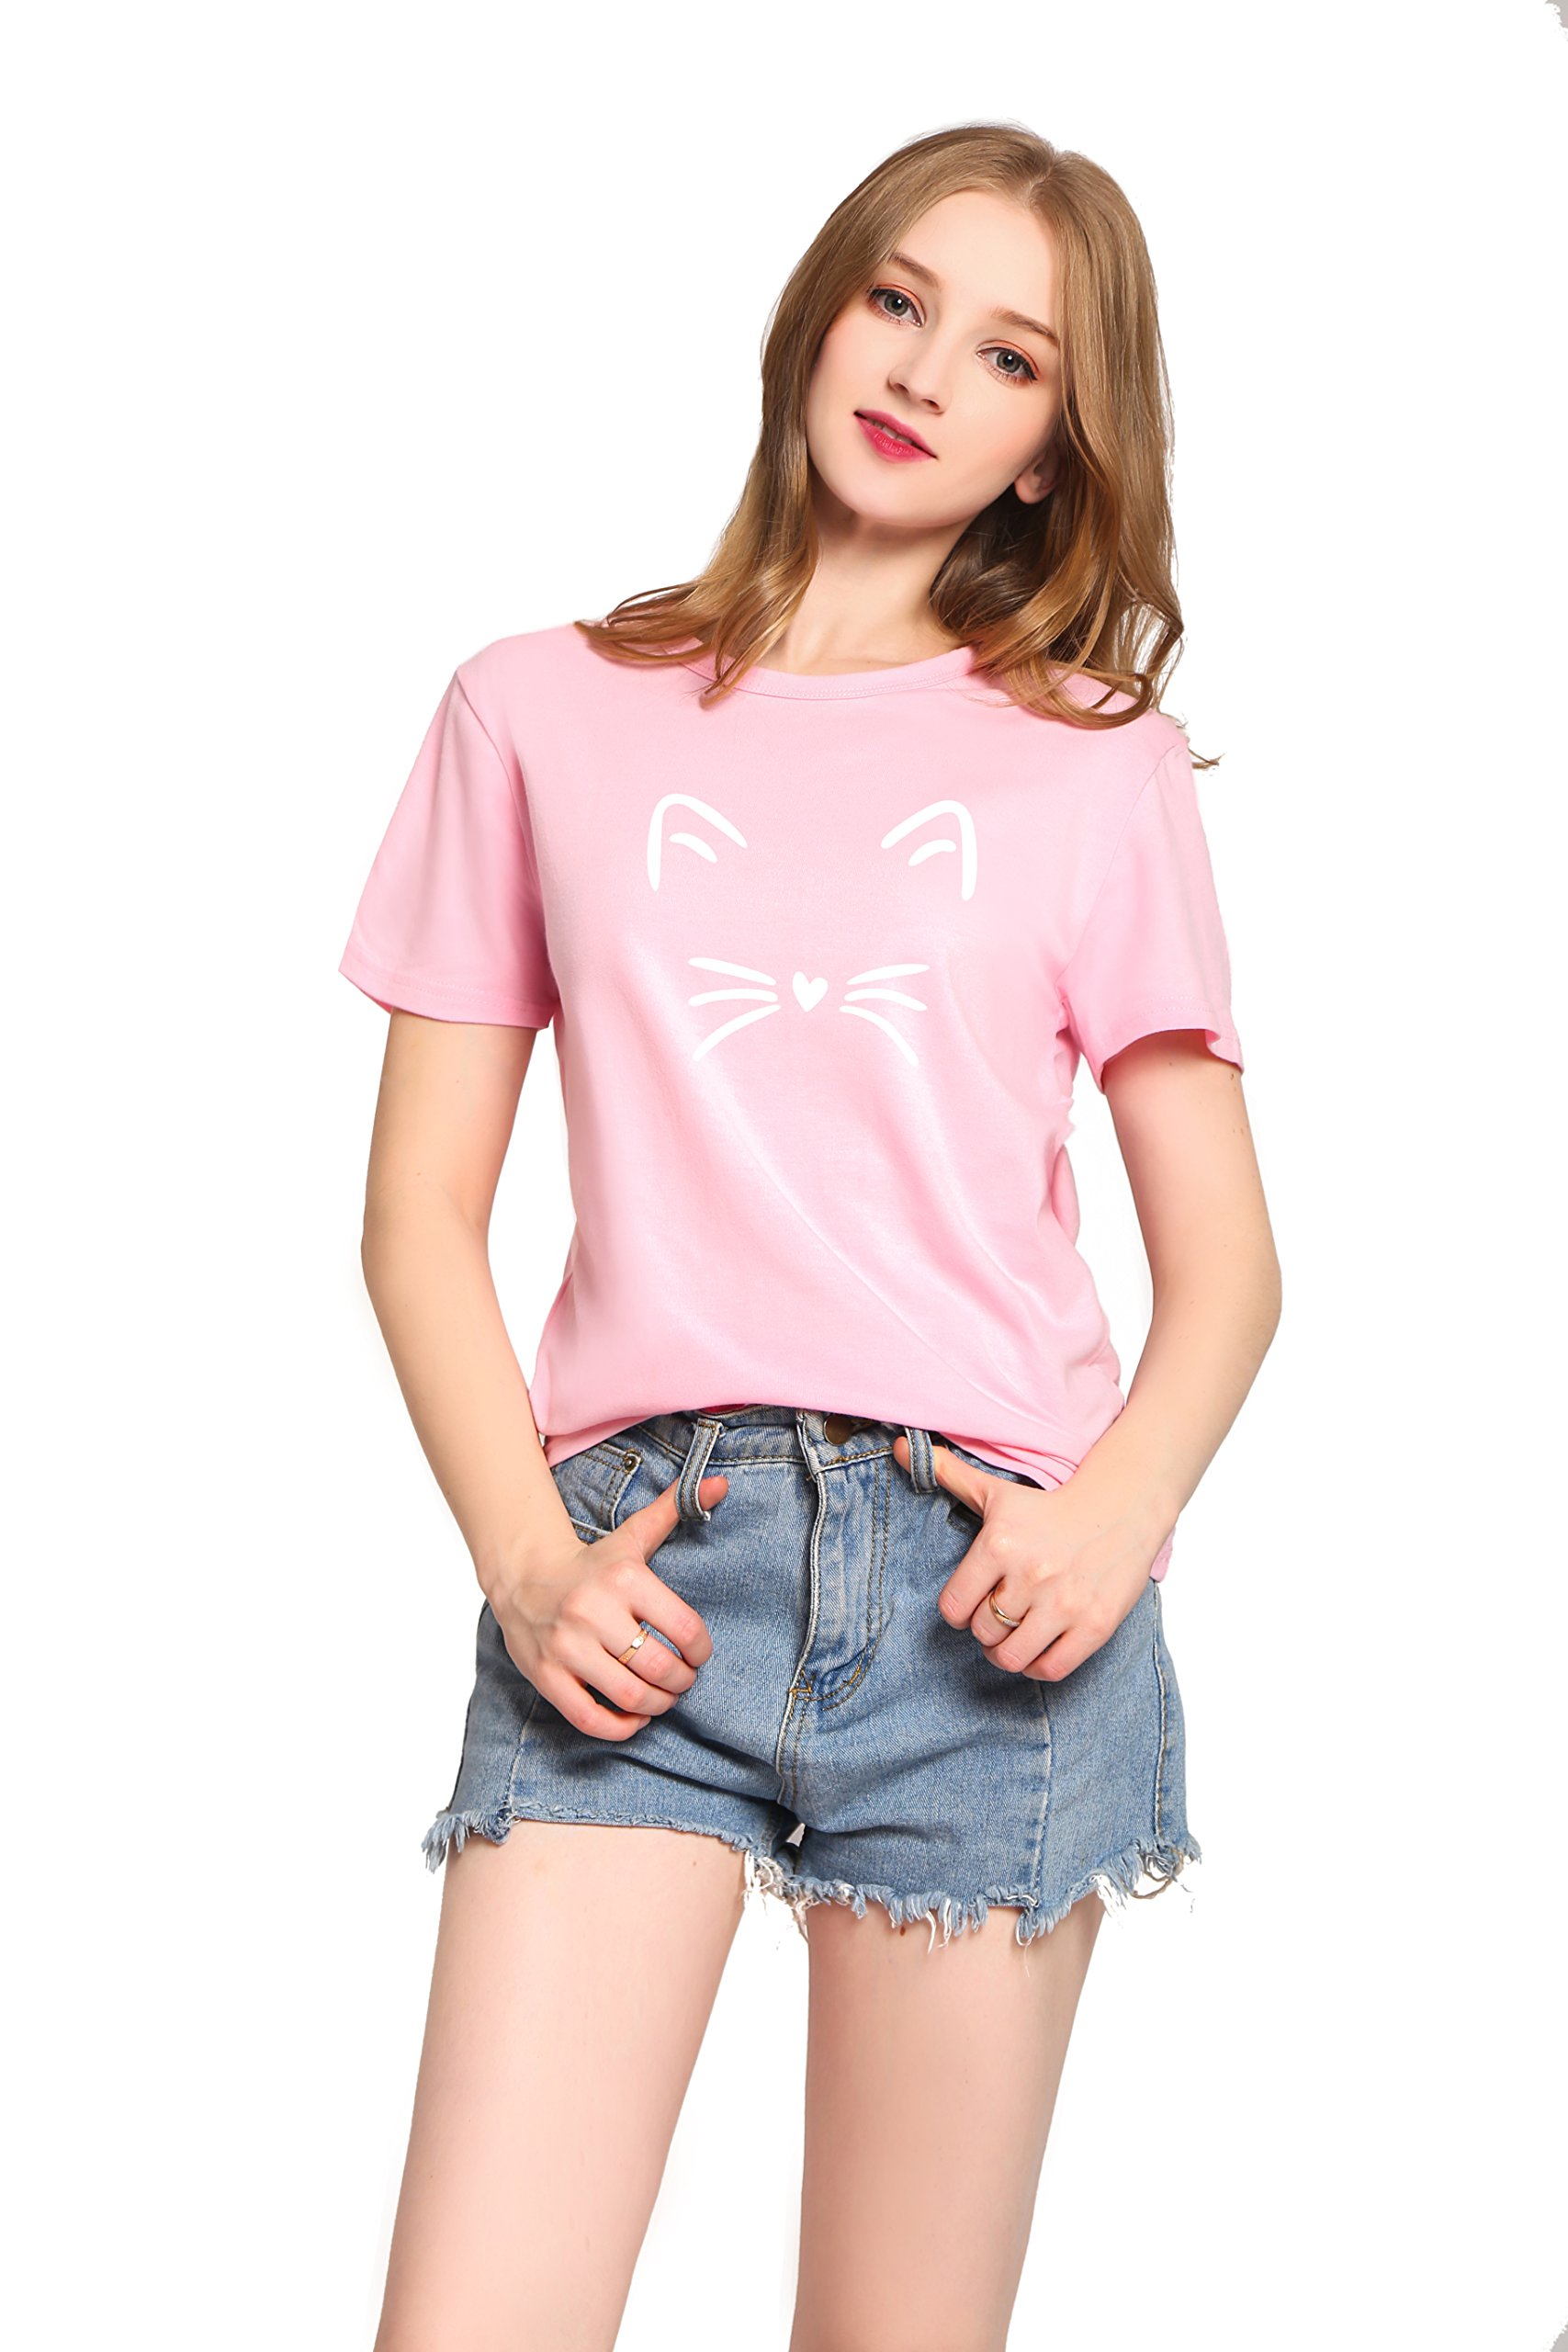 PINJIA Womens Cute Letter Printed Graphic Funny Tshirts Top Tees(MX15)(XXL, Pink Cat)